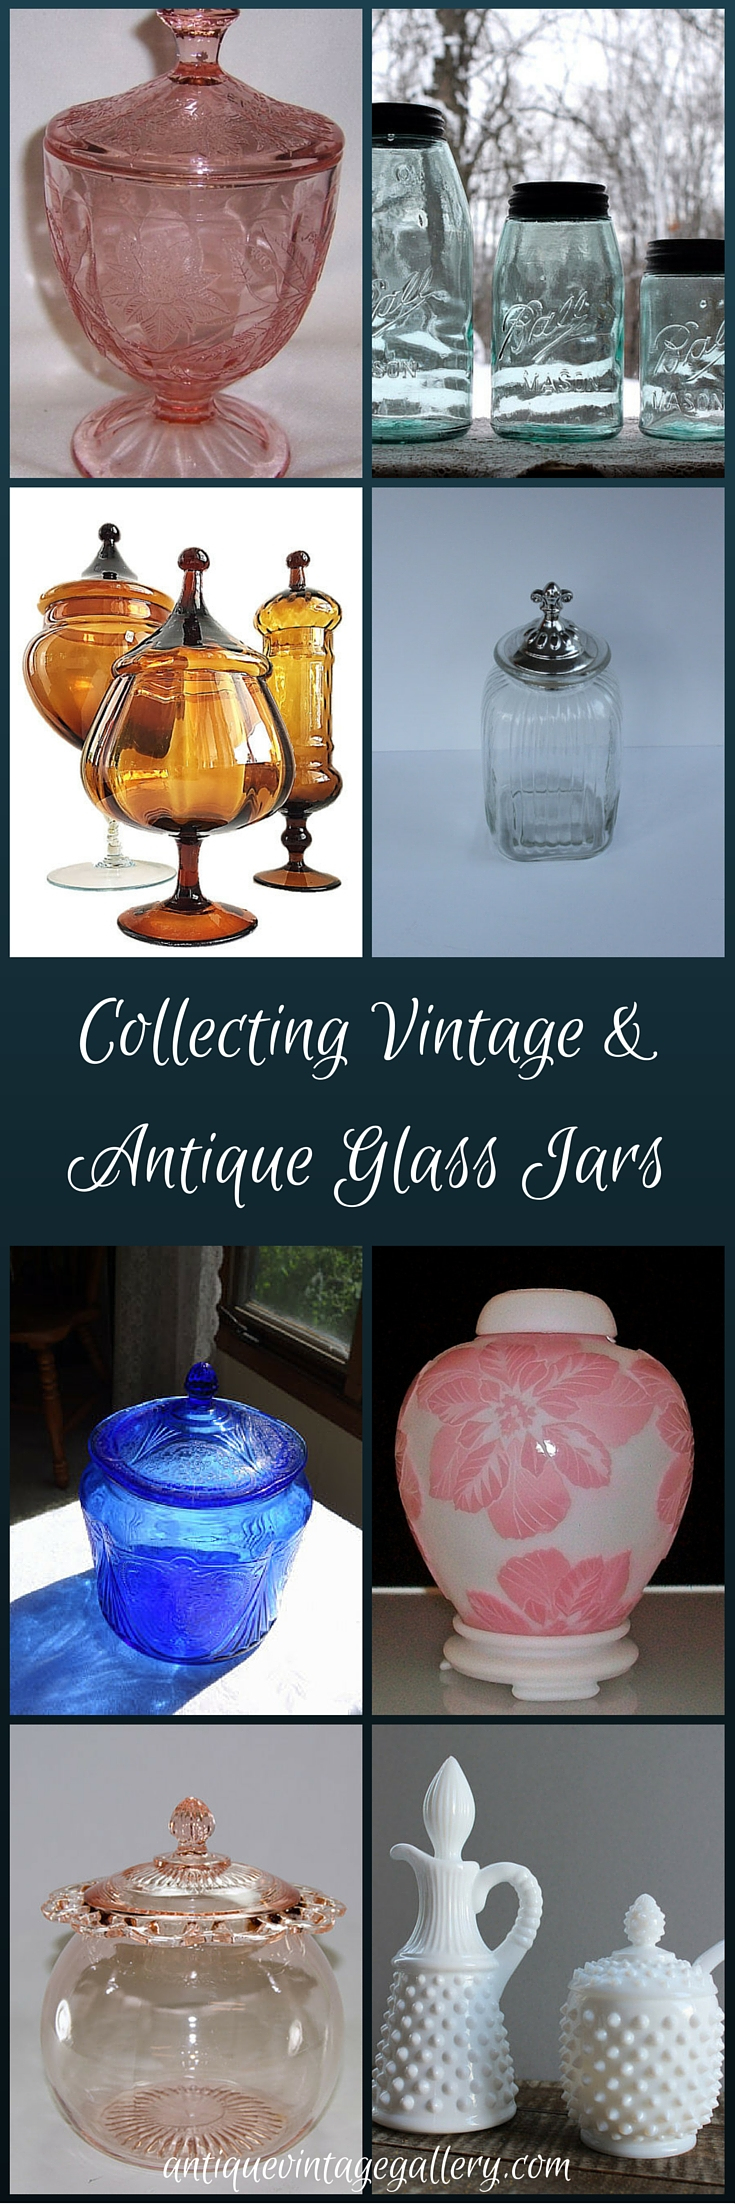 Collecting Vintage and Antique Glass Jars